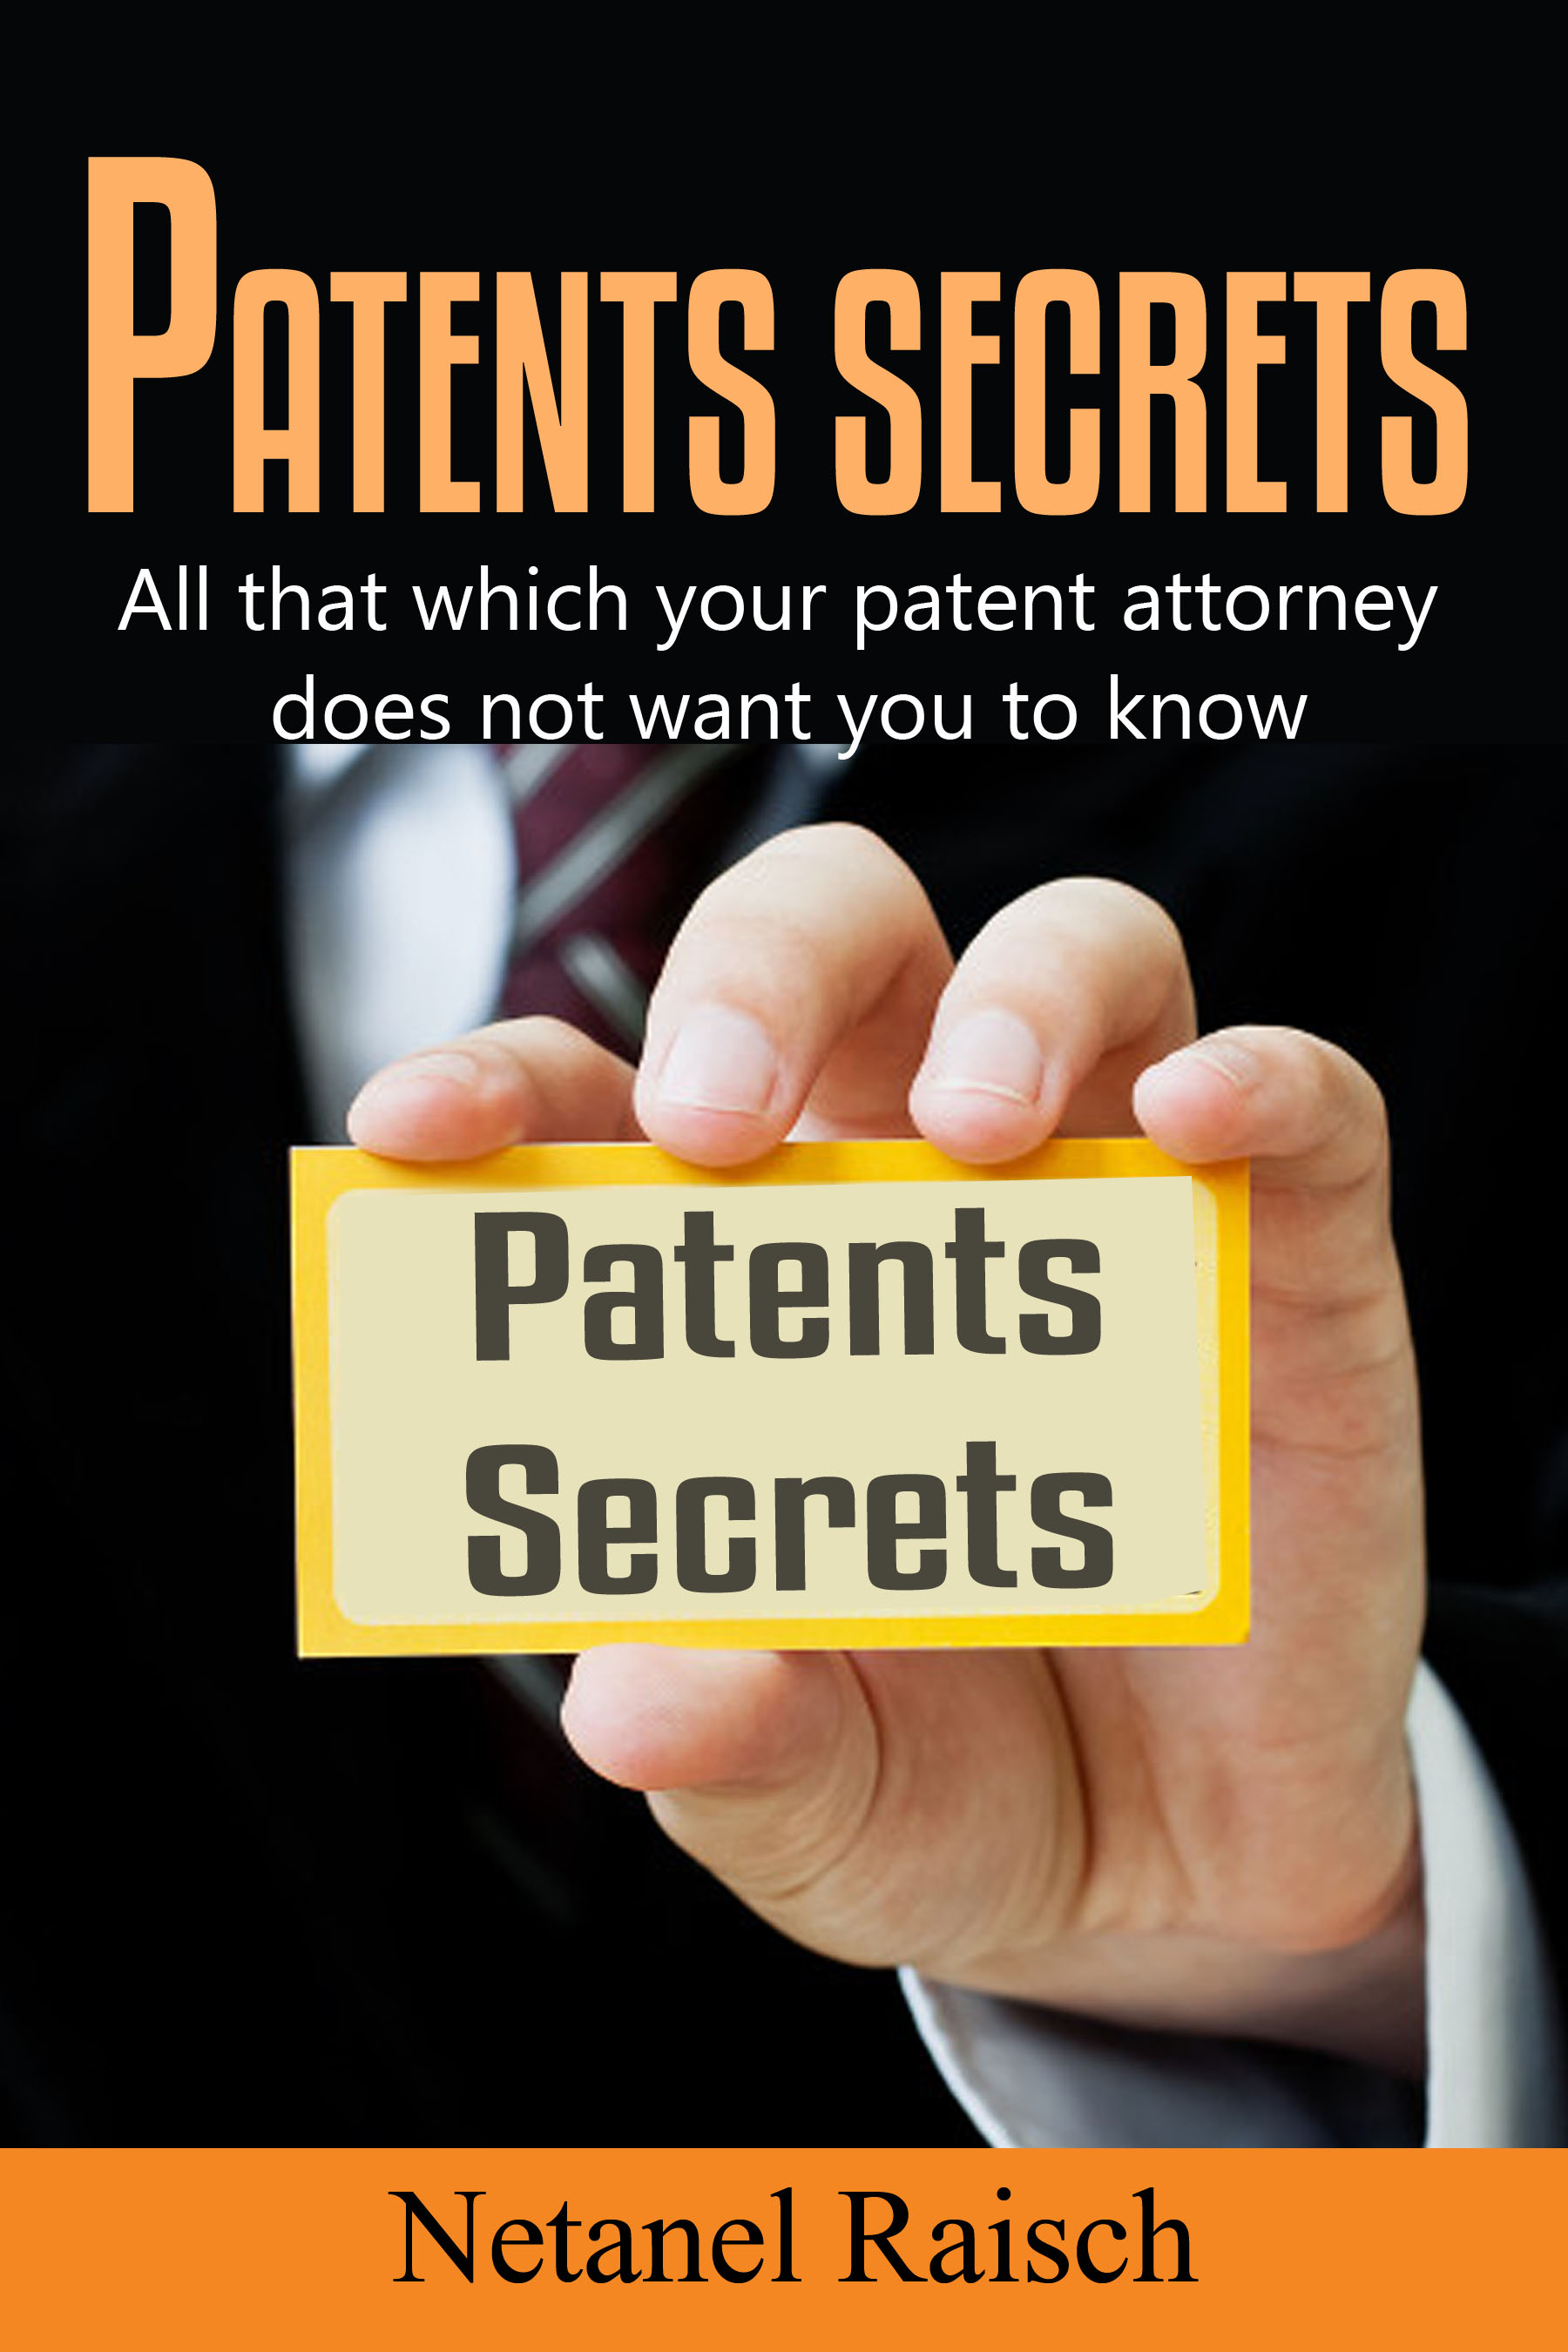 How to Search for Patent Attorneys How to Search for Patent Attorneys new images